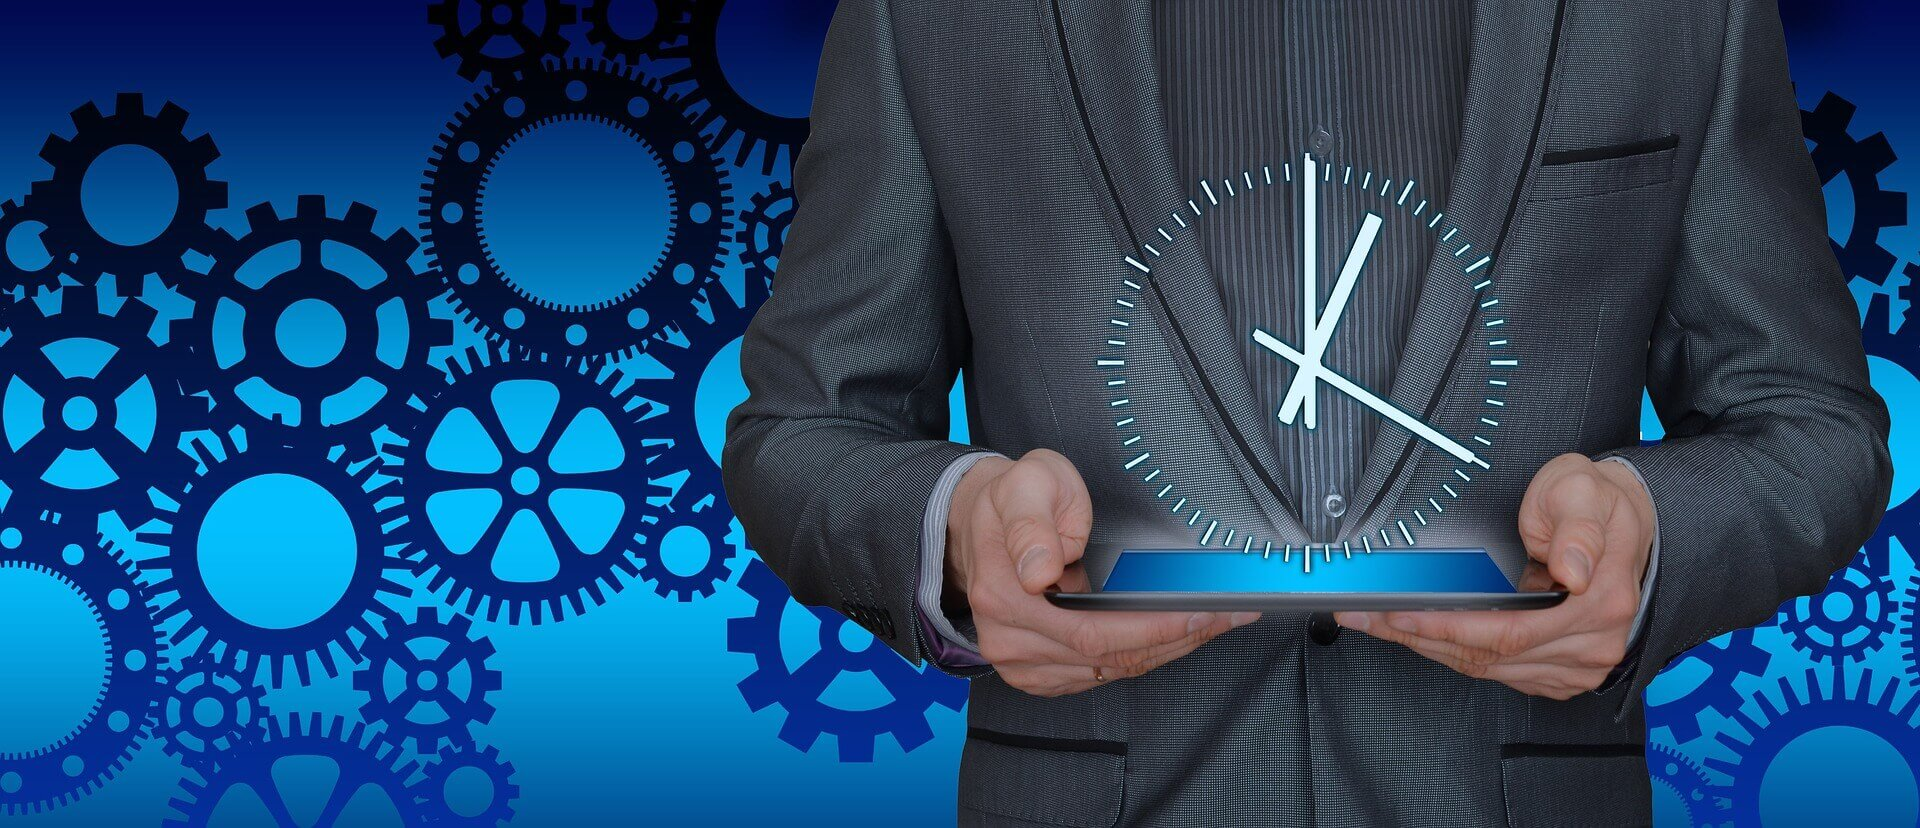 A person is holding a tablet with a clock out of it. The blue colored background symbolizes the execution and optimization processes.